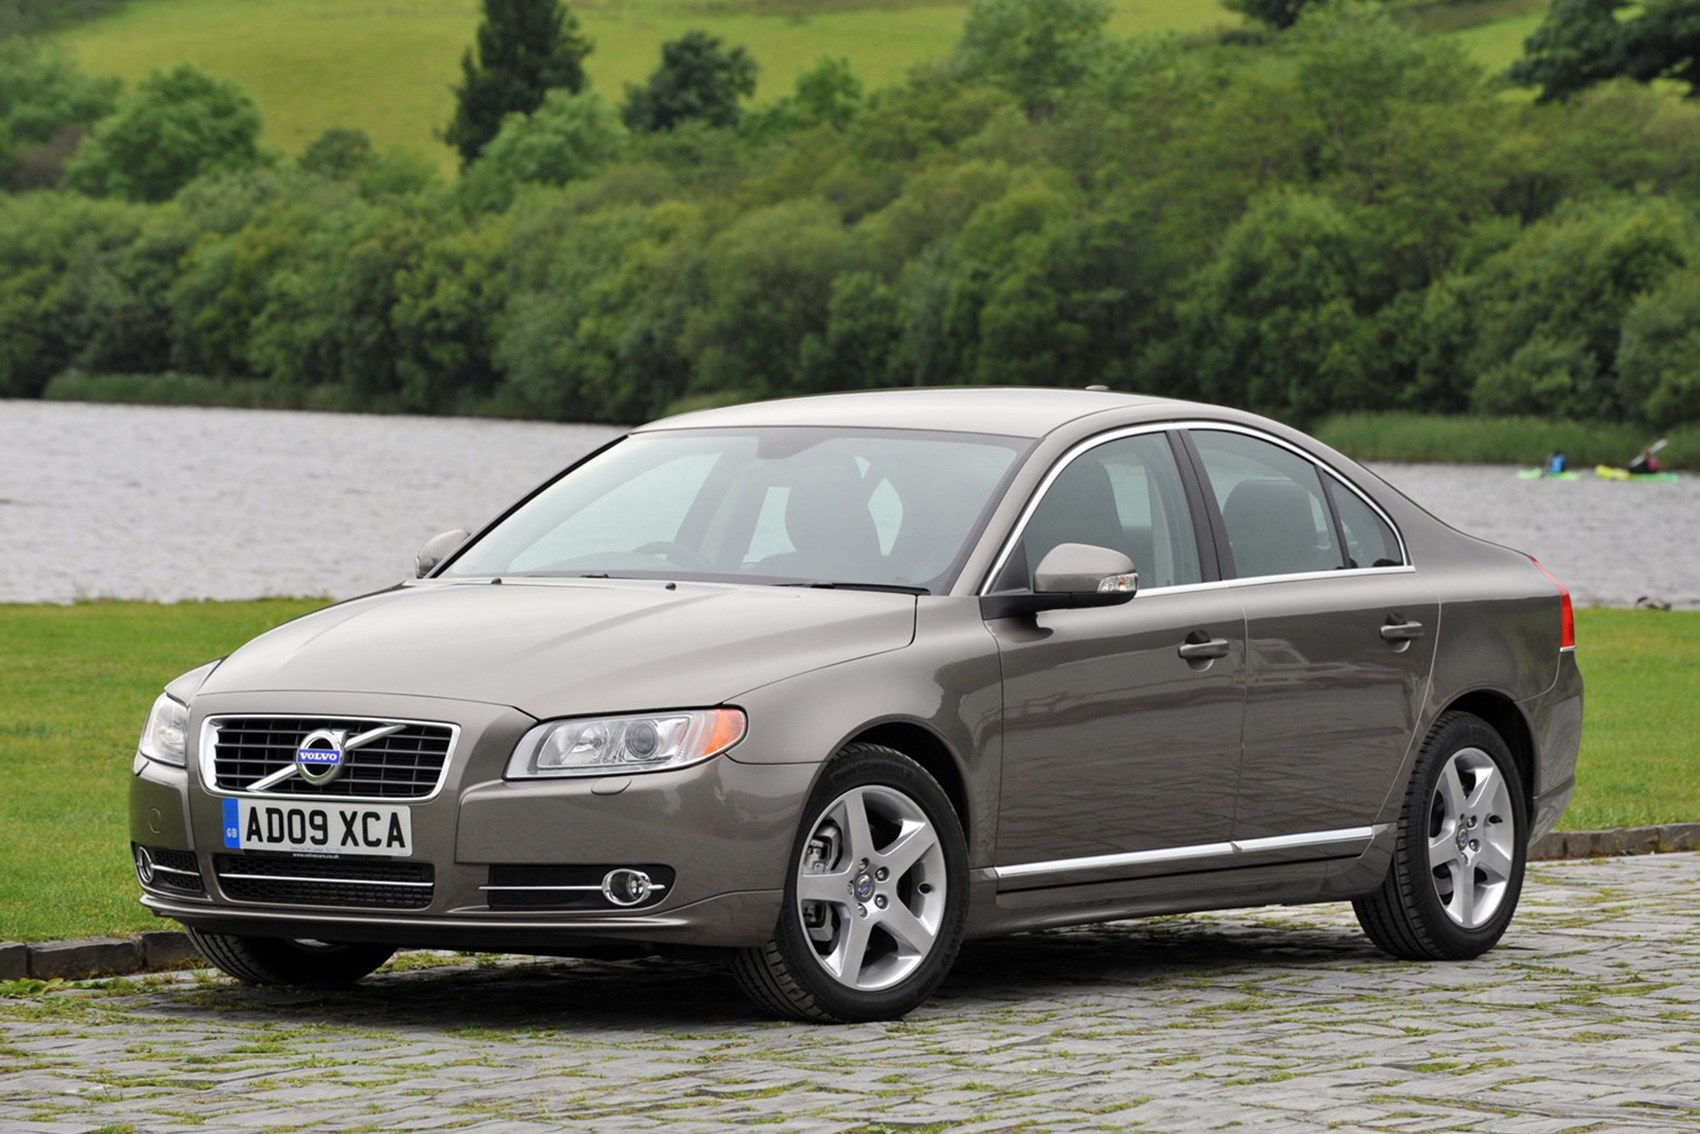 Volvo S80 - luxury cars for less than £10k